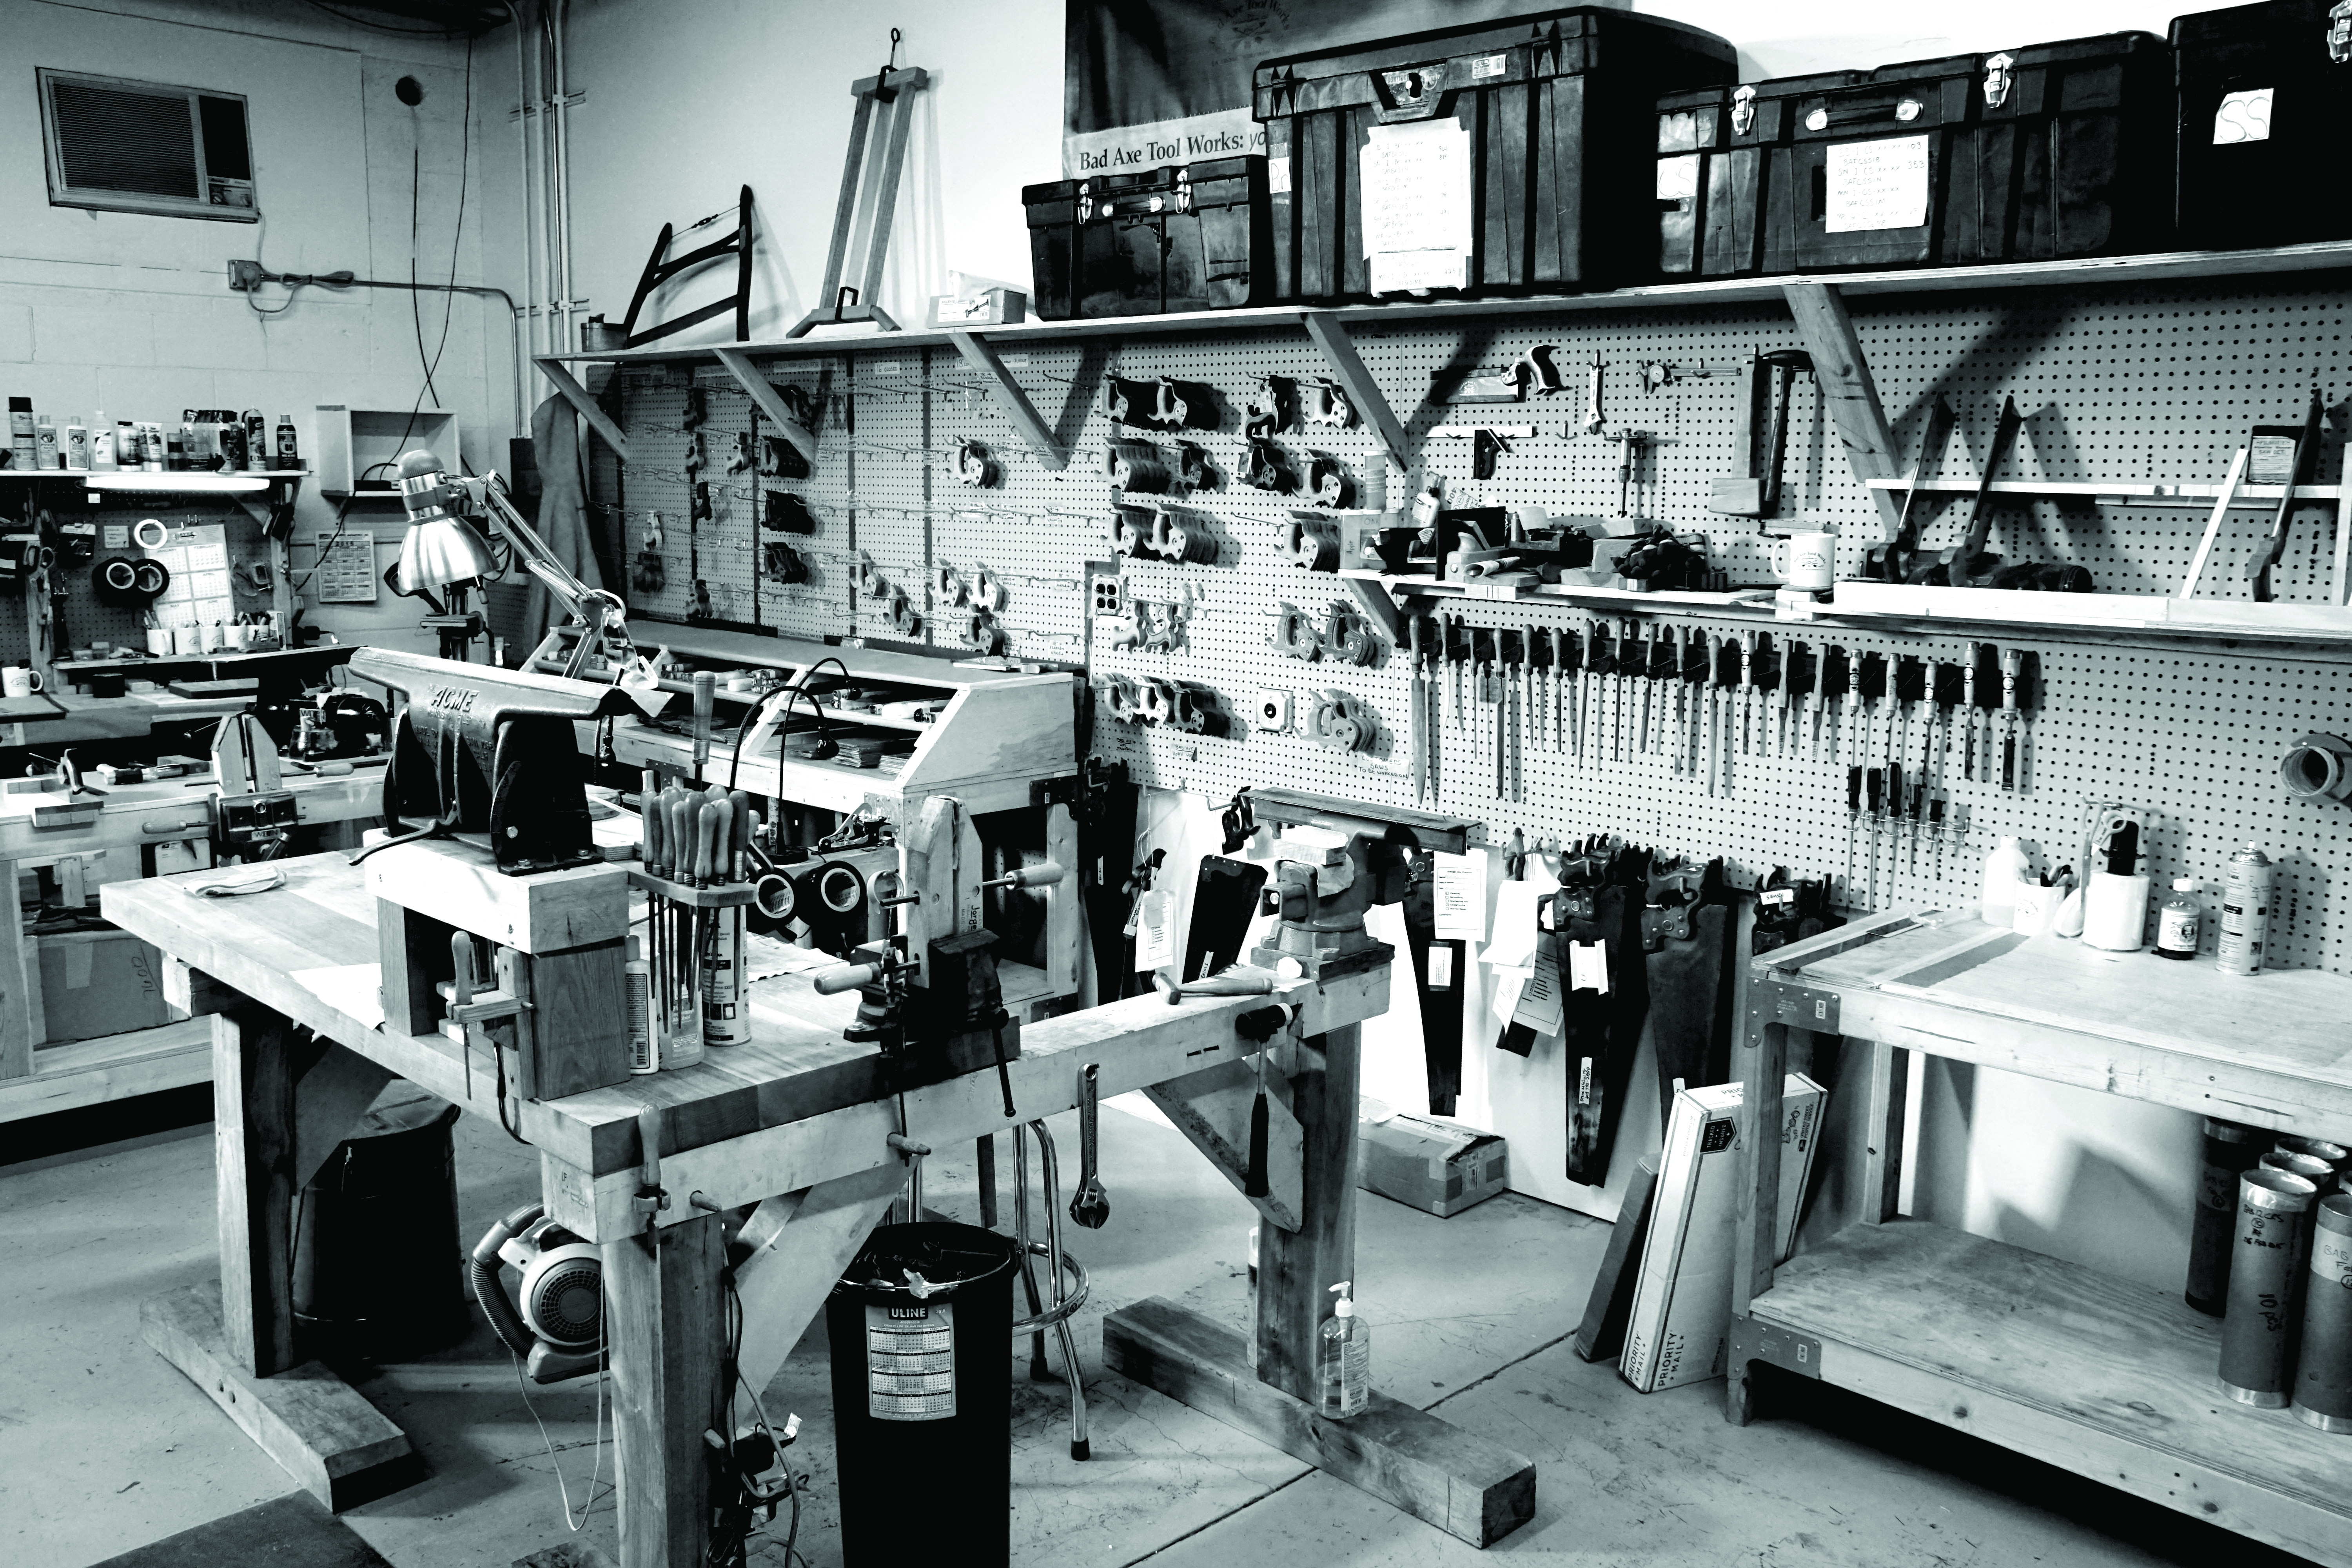 Unplugged Tools: A Maker's Journey to Revive Traditional Woodworking